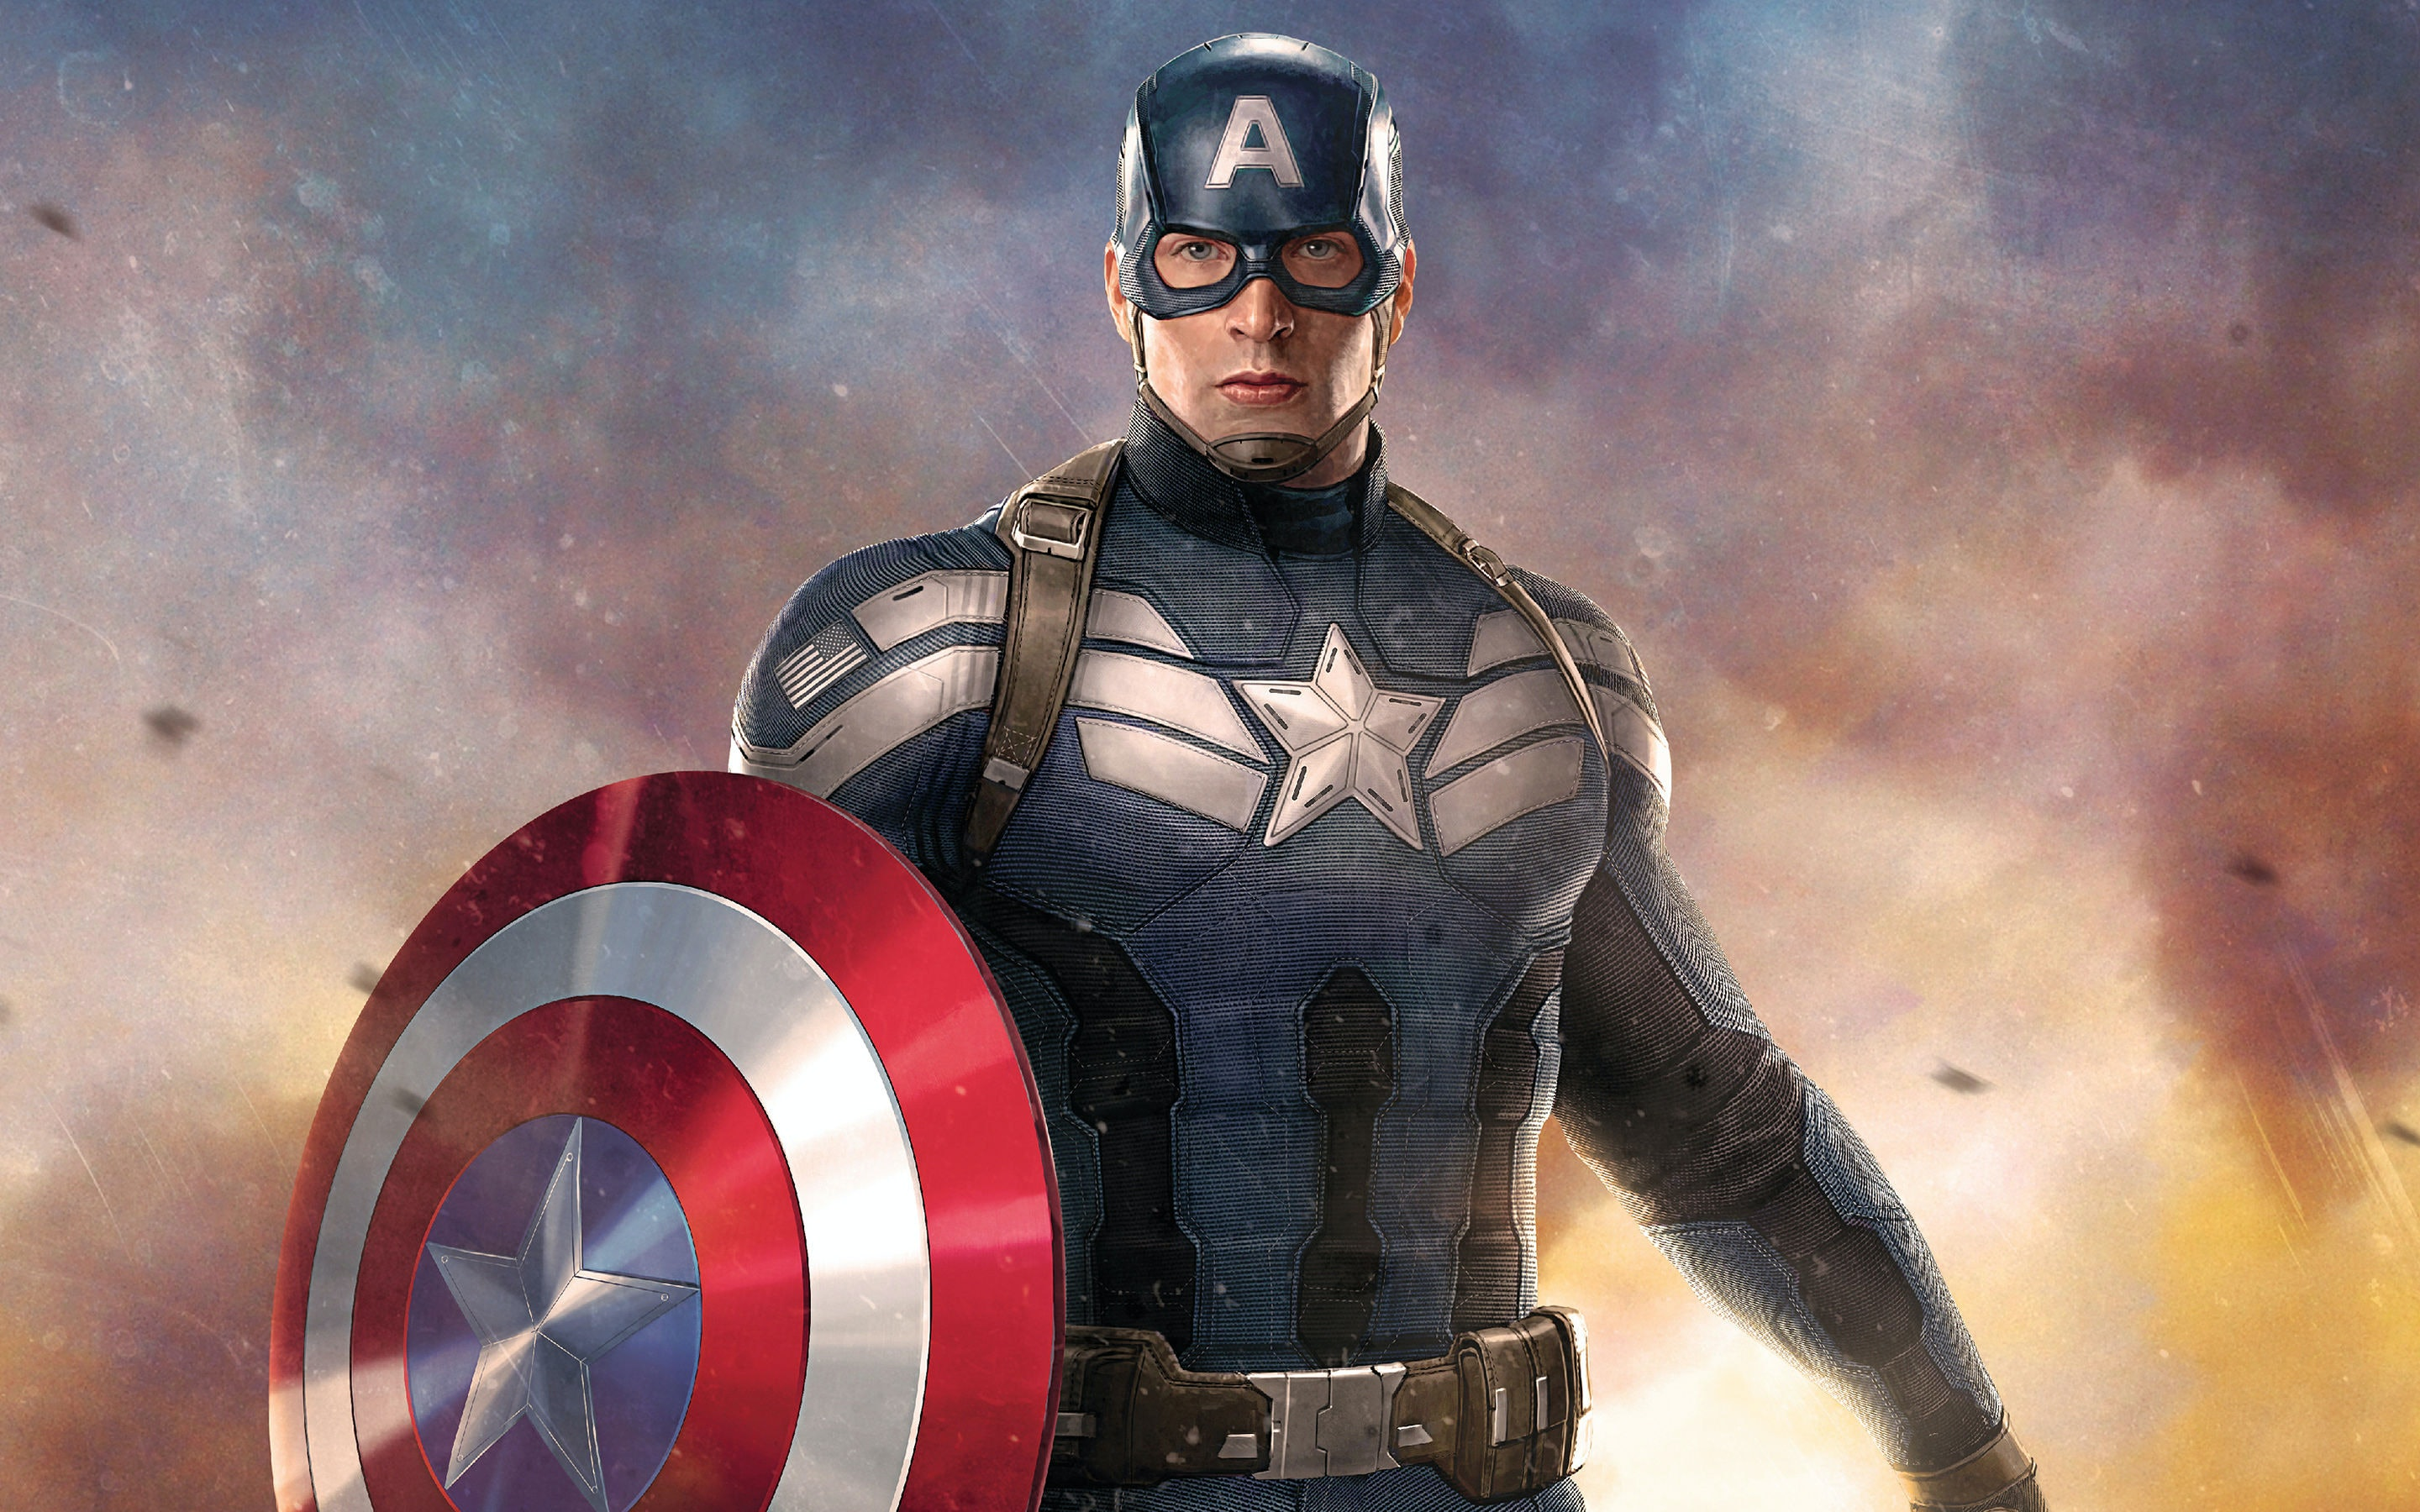 When did captain america come out